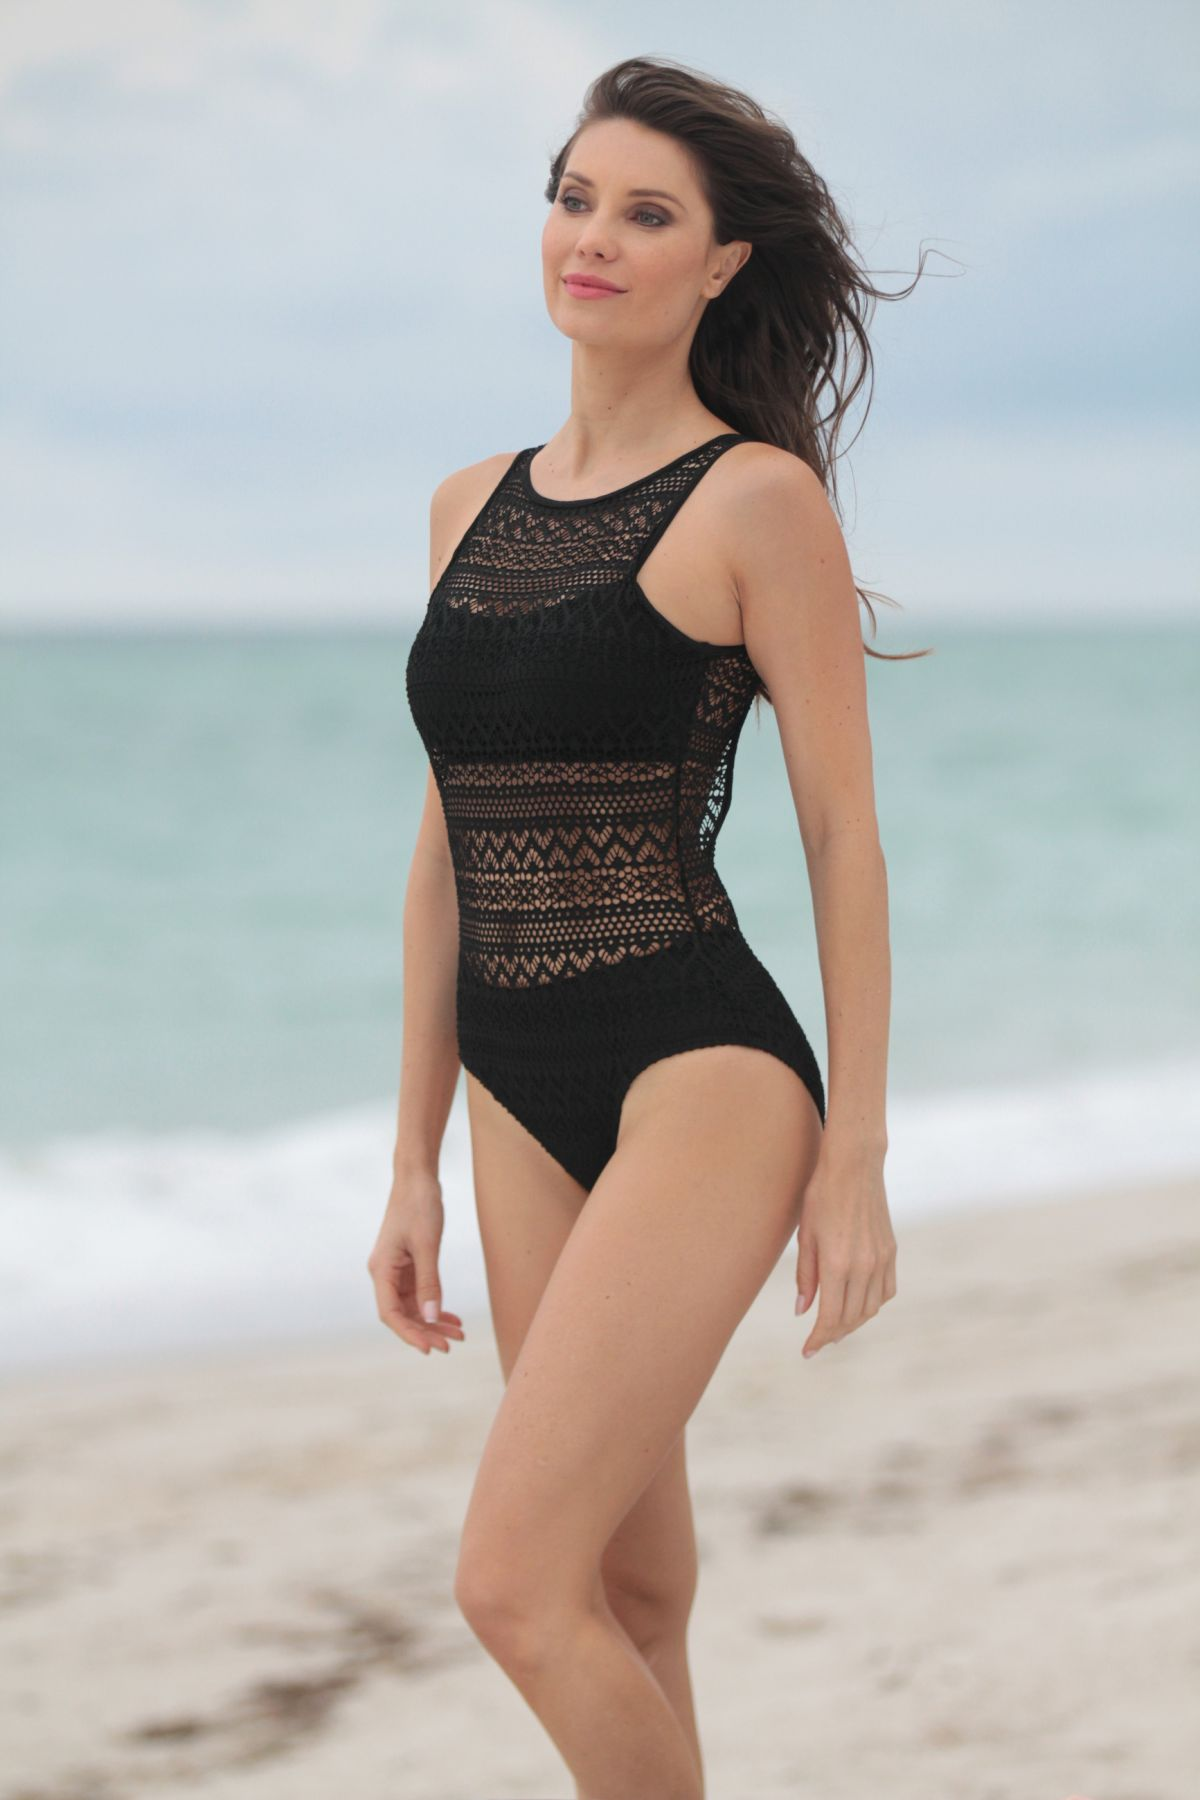 c159a320a5769 JULIA PEREIRA in Swimsuit for China Modlily and Liligal Swimwear Collection  Worldwide Campaign 11 28